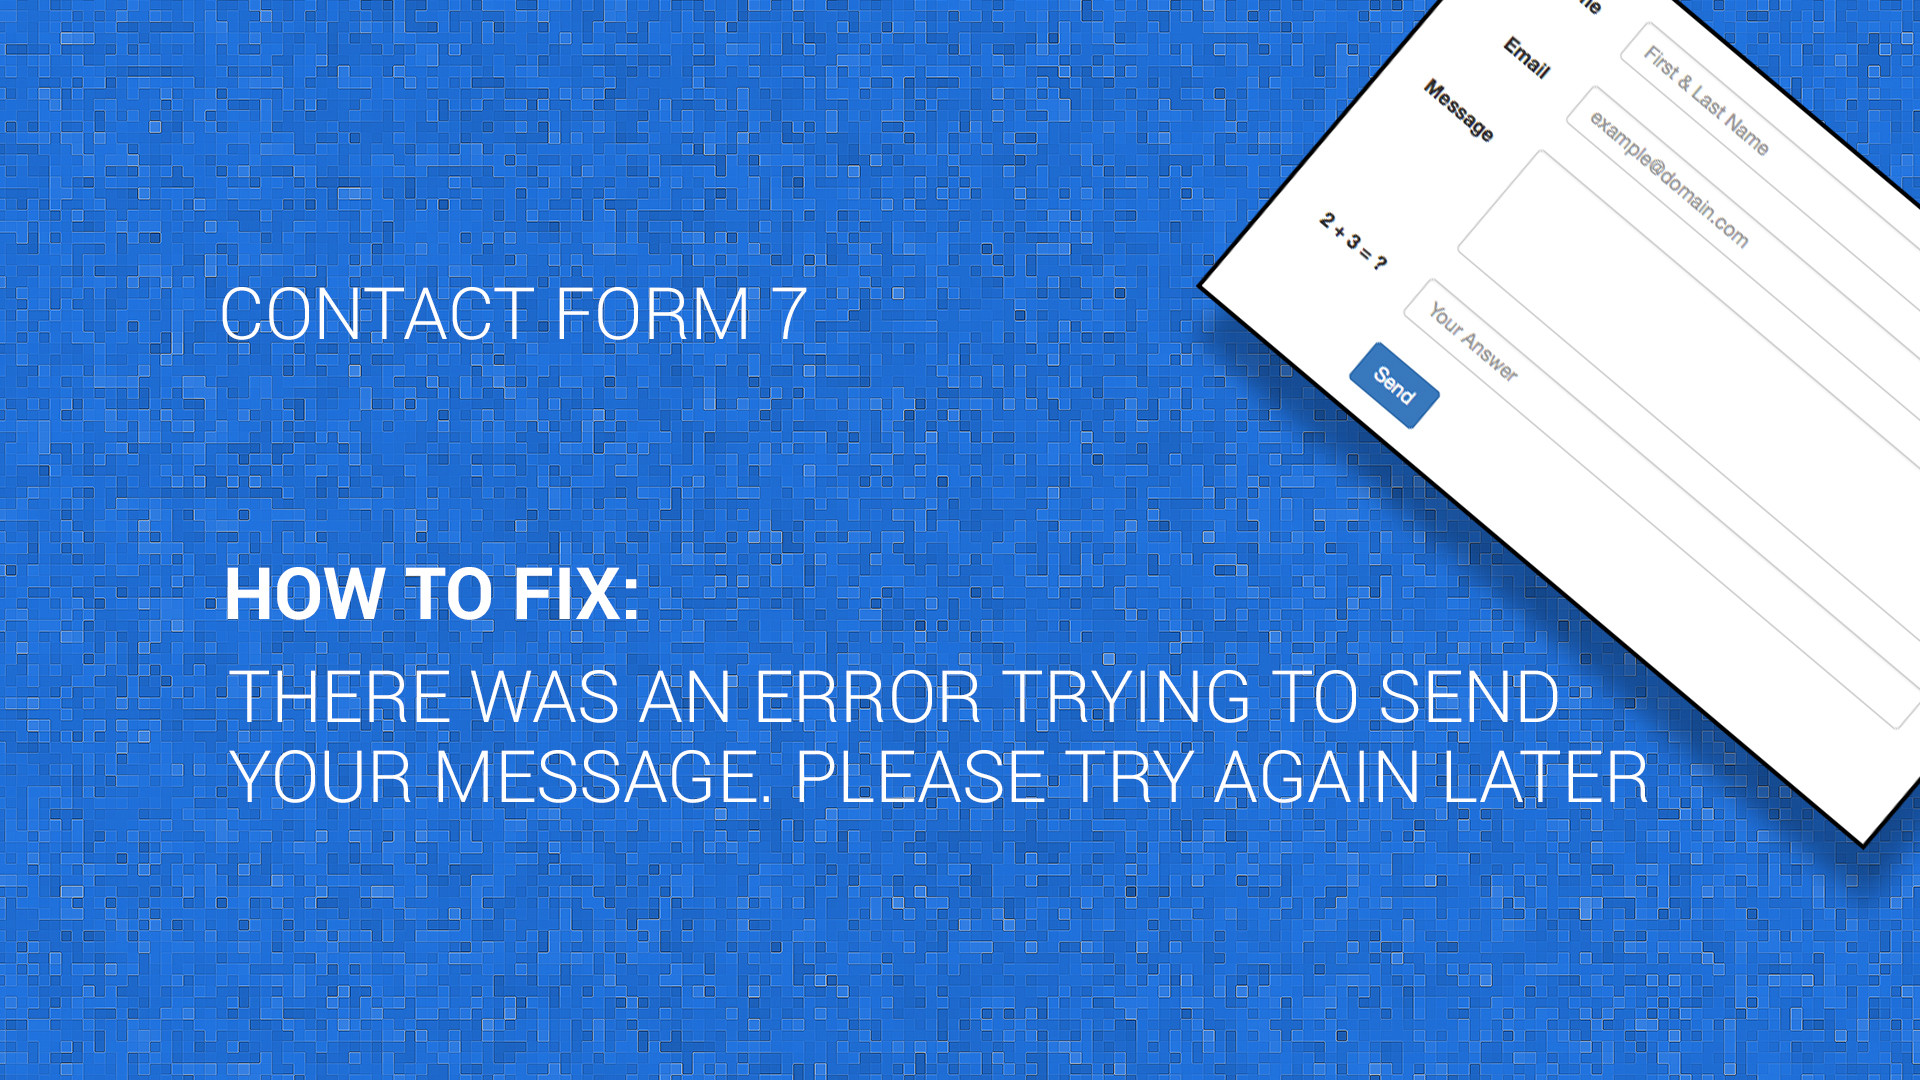 How to Fix There was an error trying to send your message. Please try again later with Contact Form 7. Banner